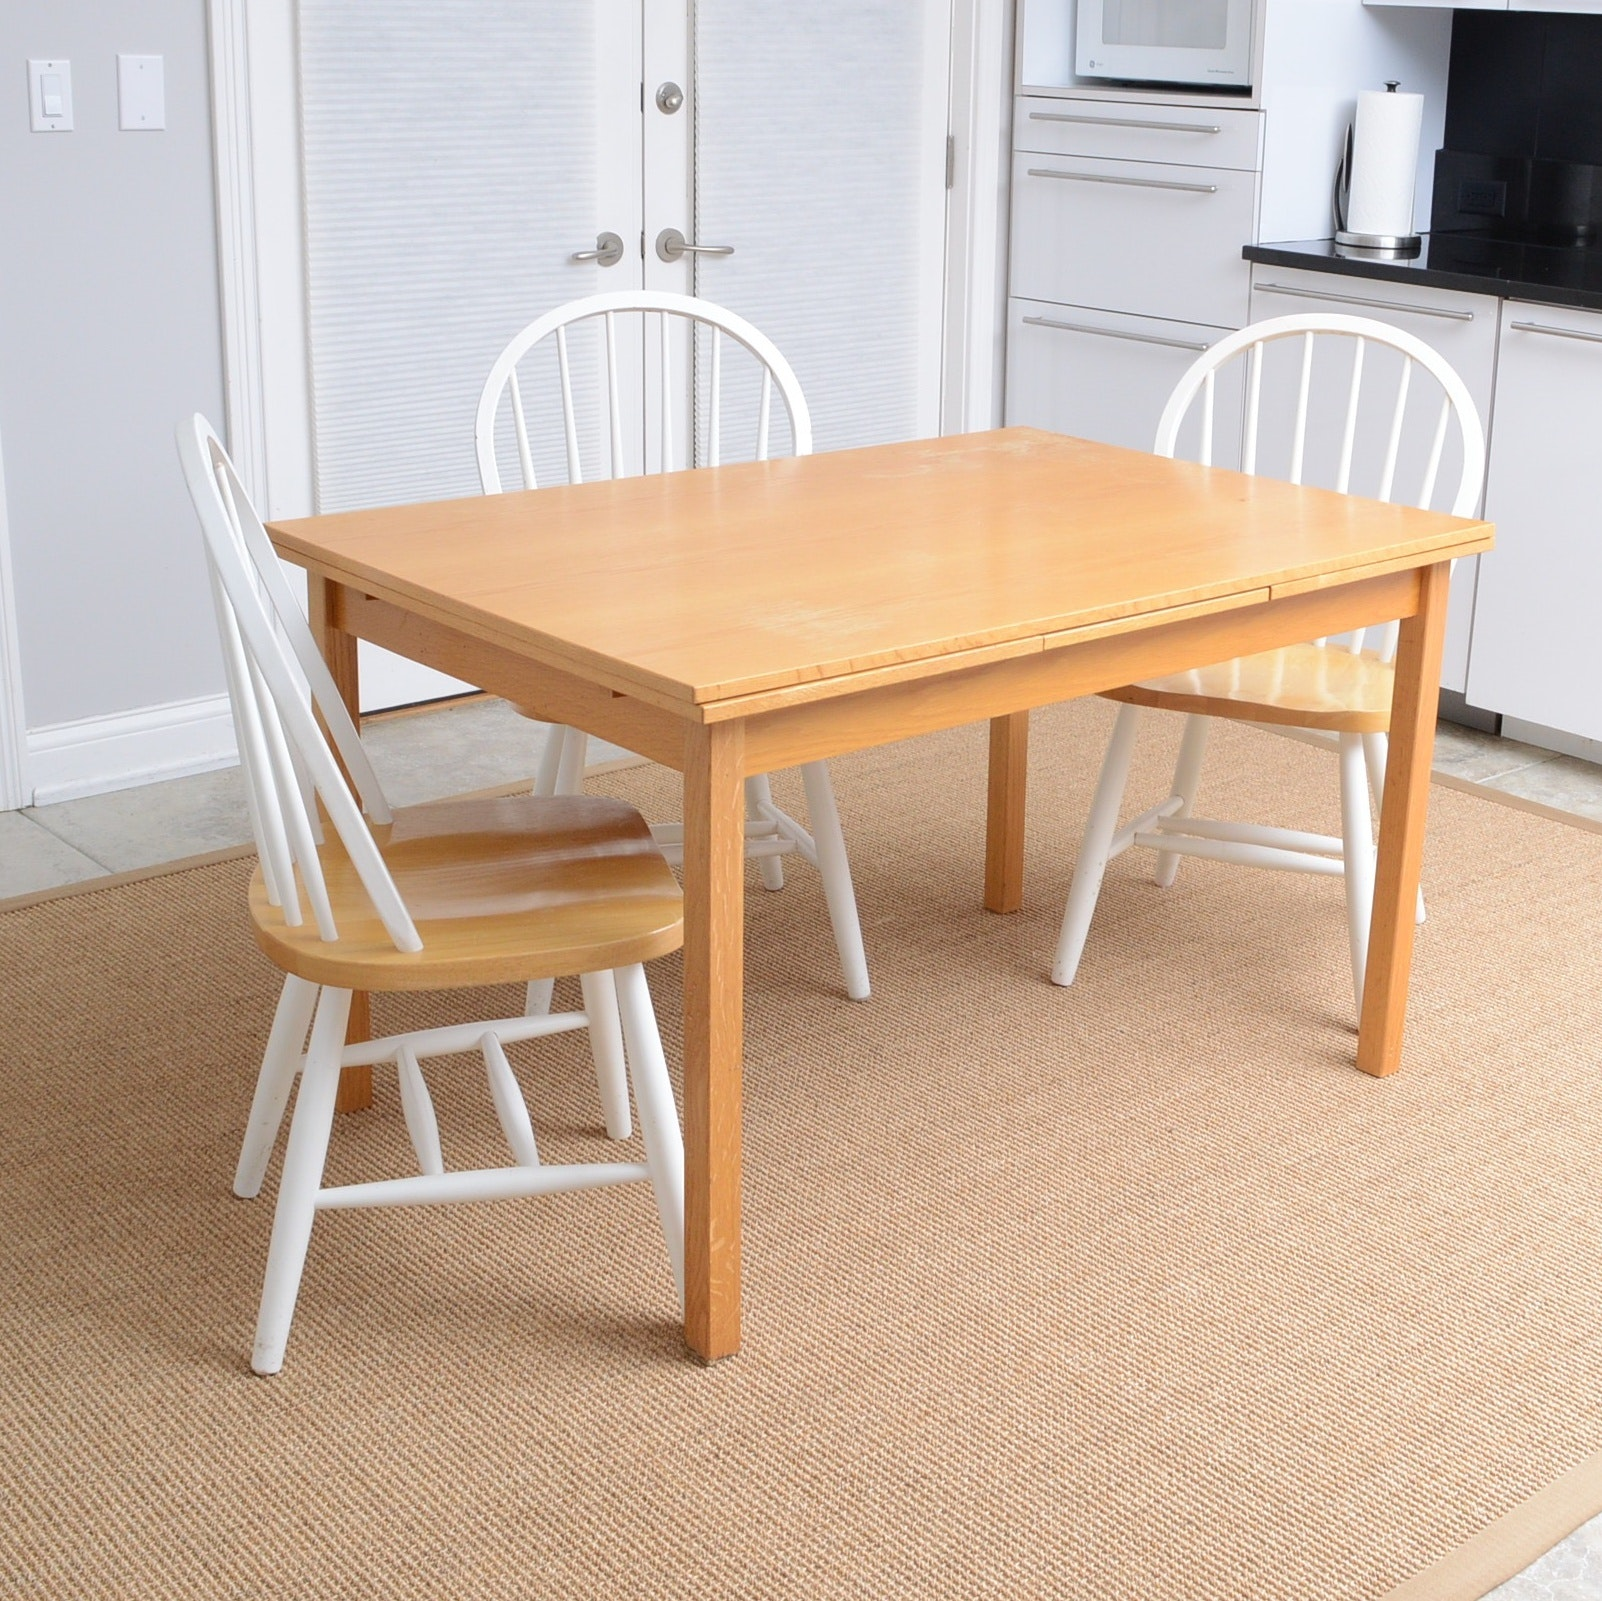 Danish Made Oak Kitchen Table and Three Windsor Chairs